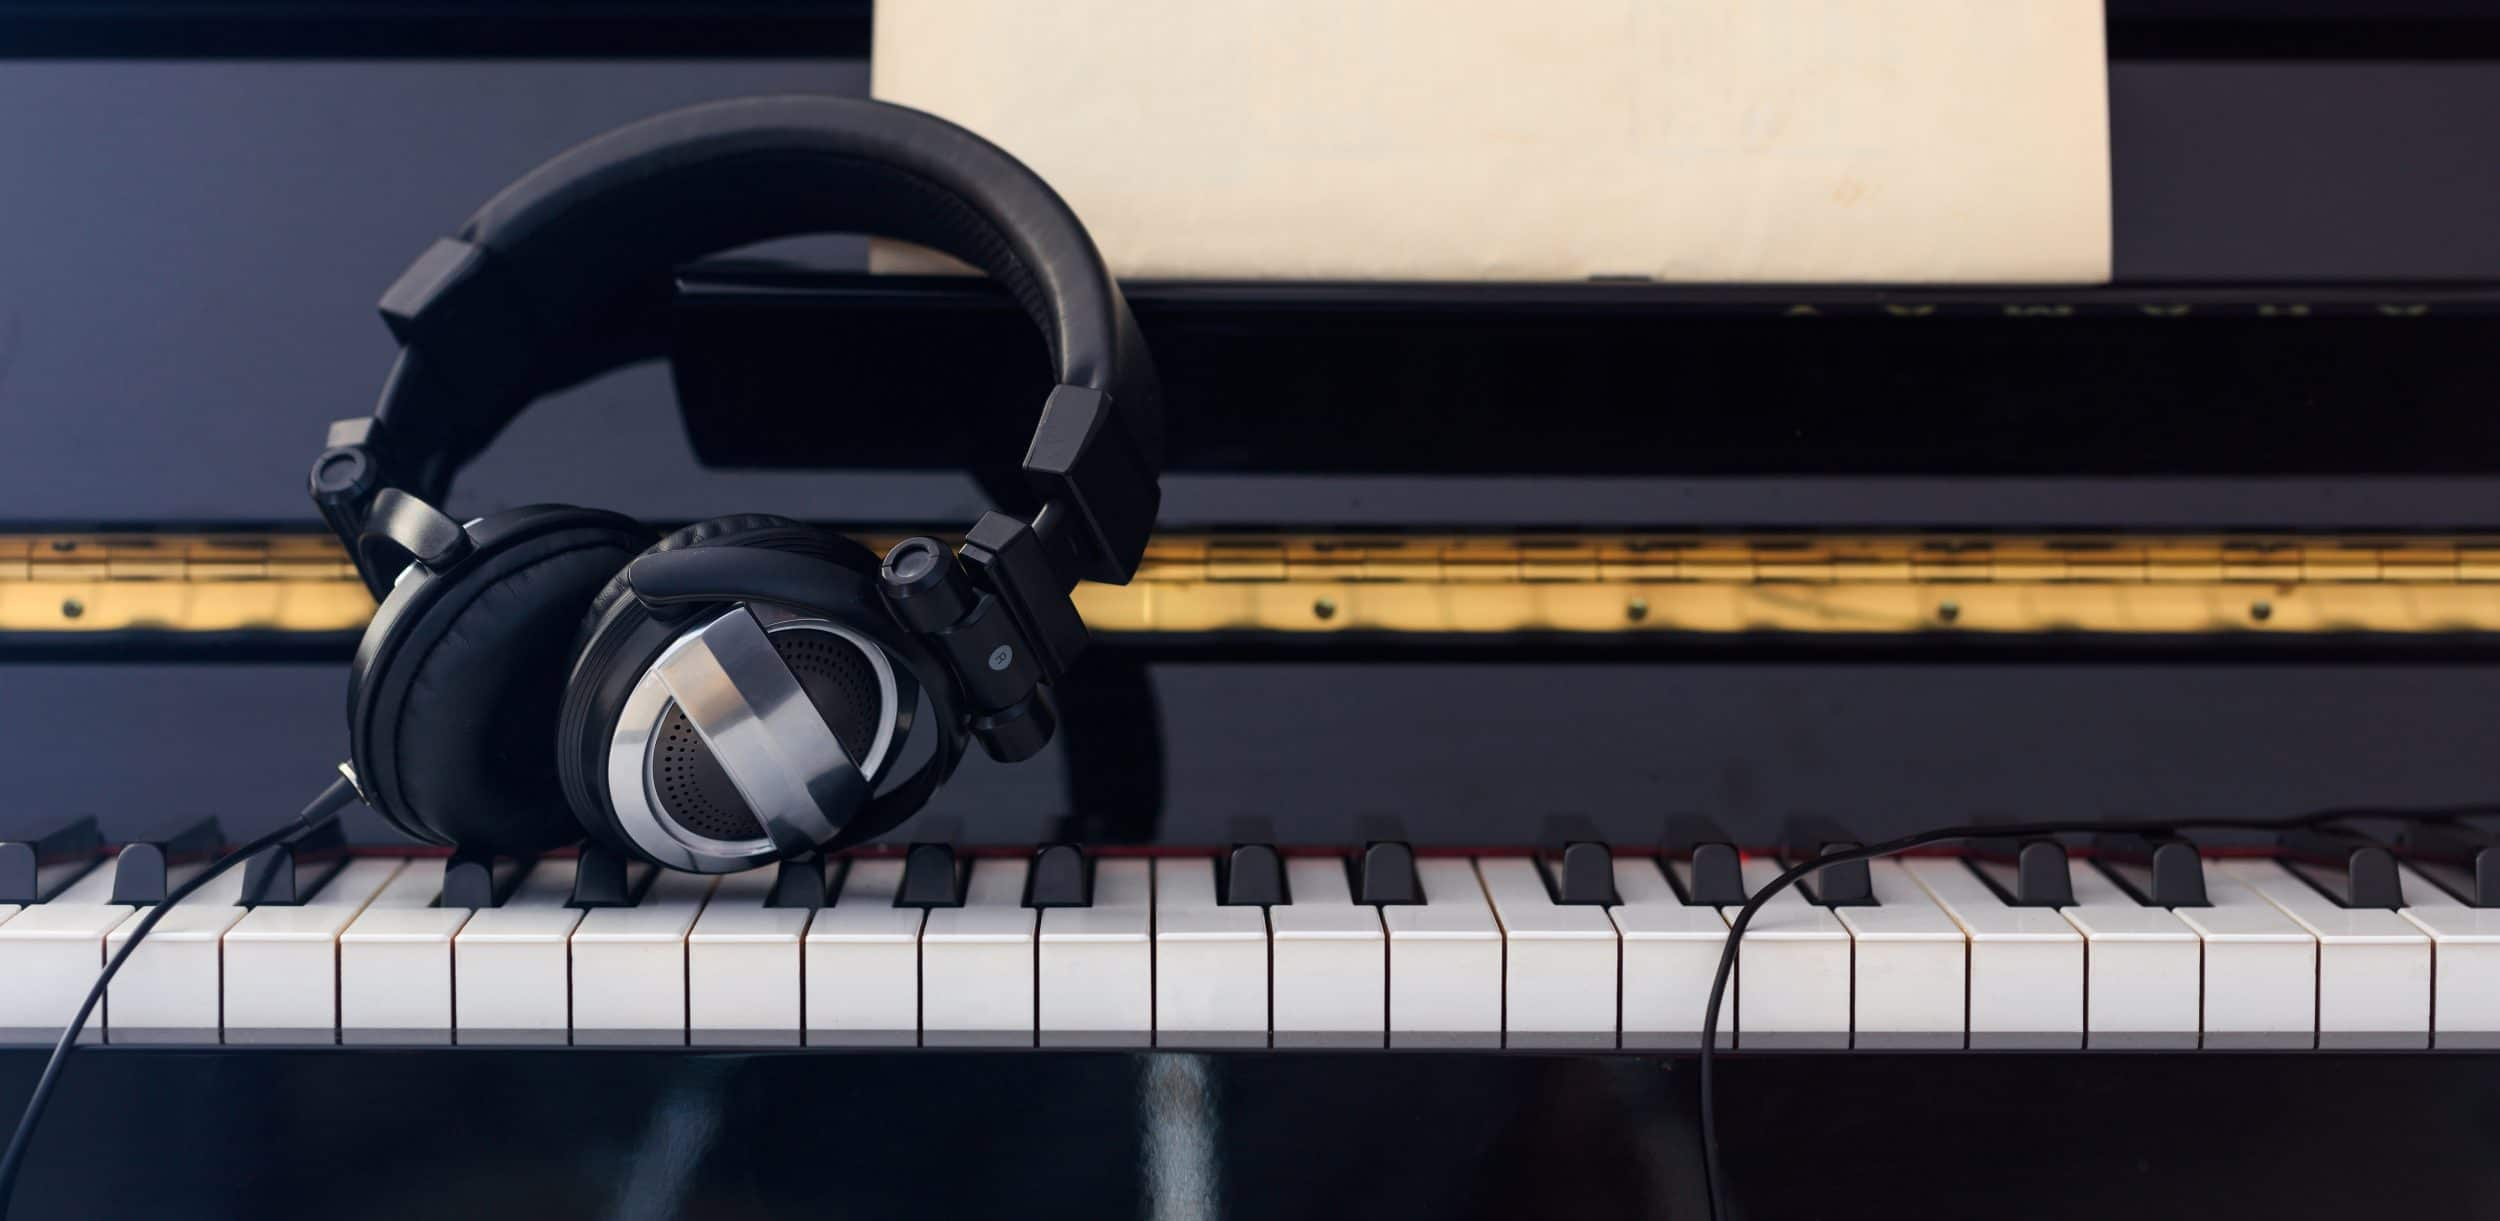 Headphones close up on piano keyboard, front view